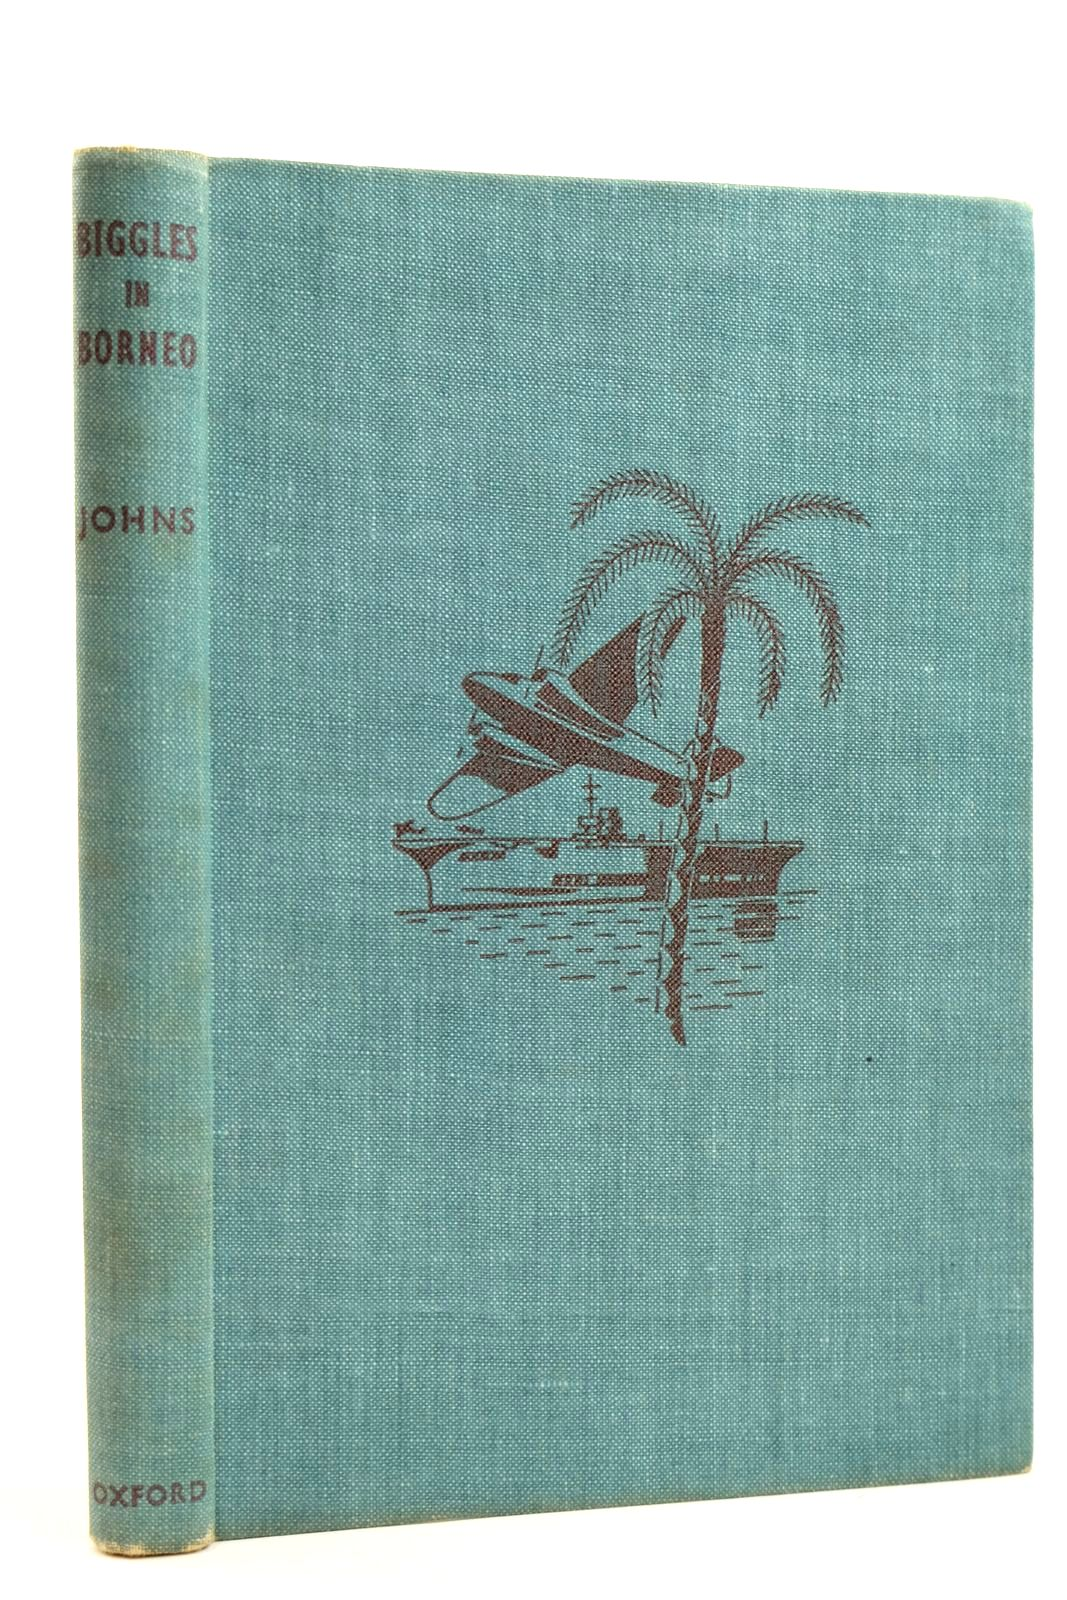 Photo of BIGGLES IN BORNEO written by Johns, W.E. illustrated by Tresilian, Stuart published by Oxford University Press (STOCK CODE: 2131851)  for sale by Stella & Rose's Books